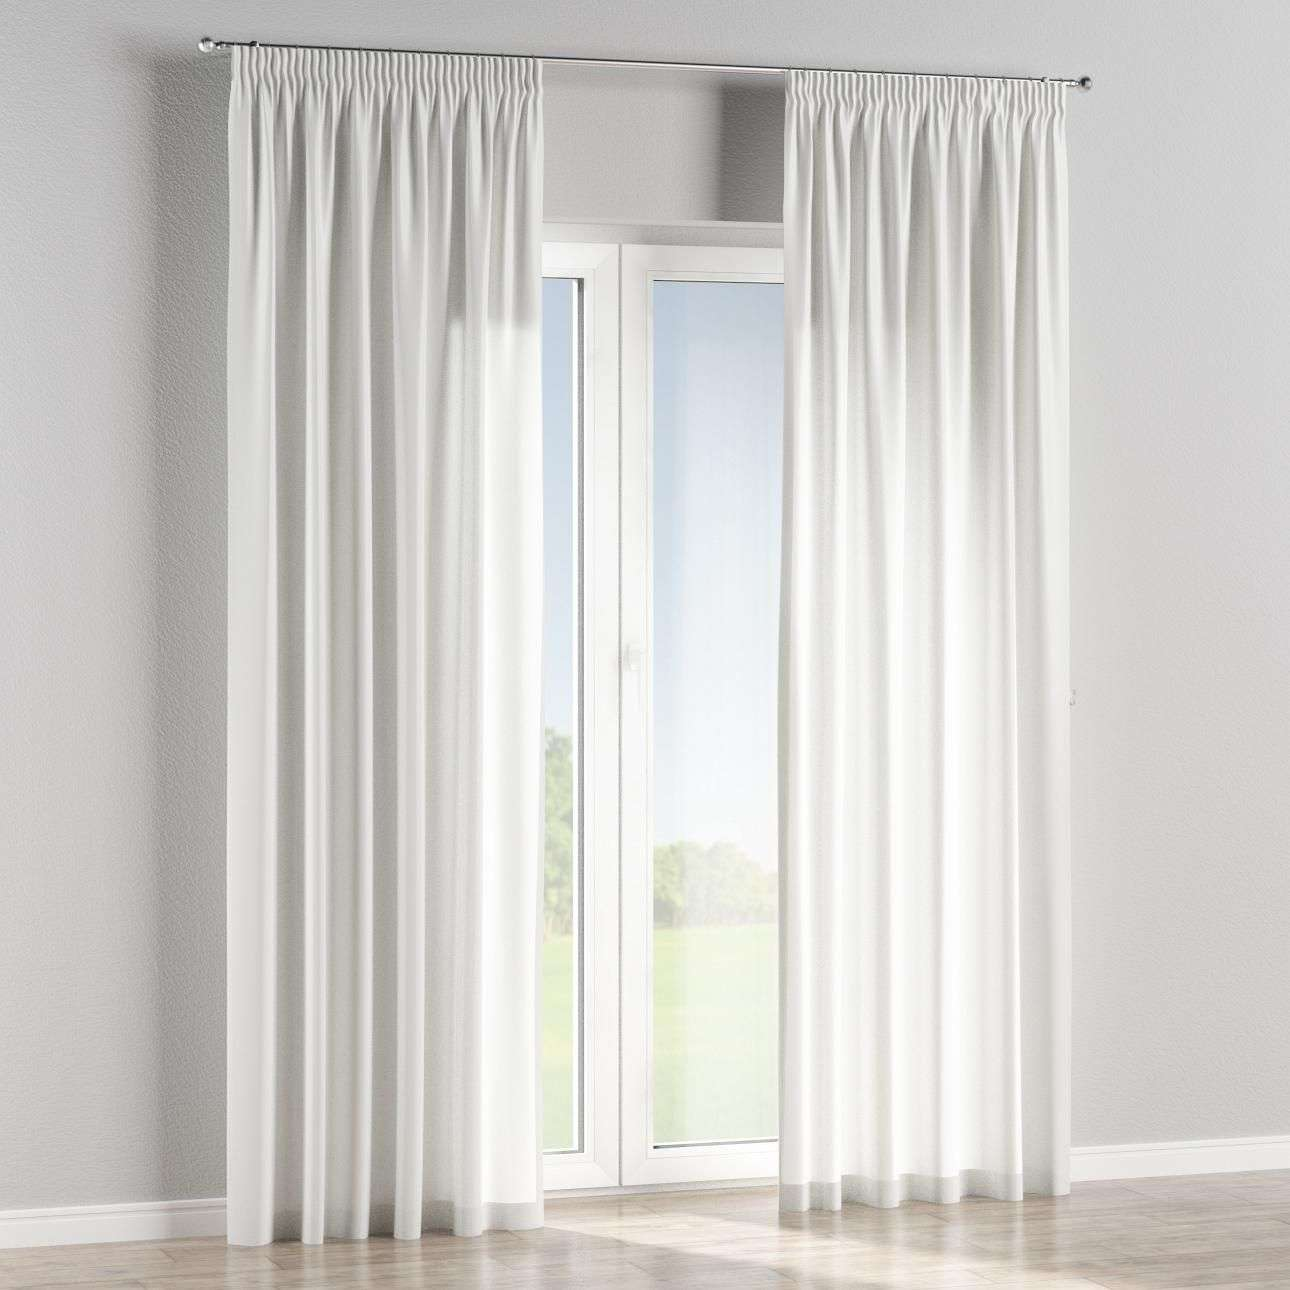 Pencil pleat curtains in collection SALE, fabric: 137-26